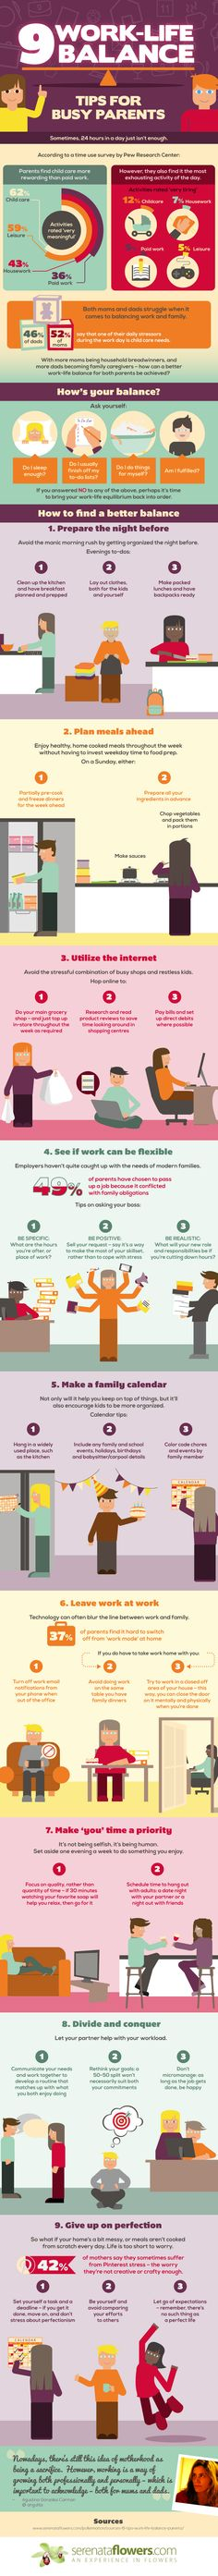 9 Work-Life Balance Tips for Busy Working Parents(Infographic)